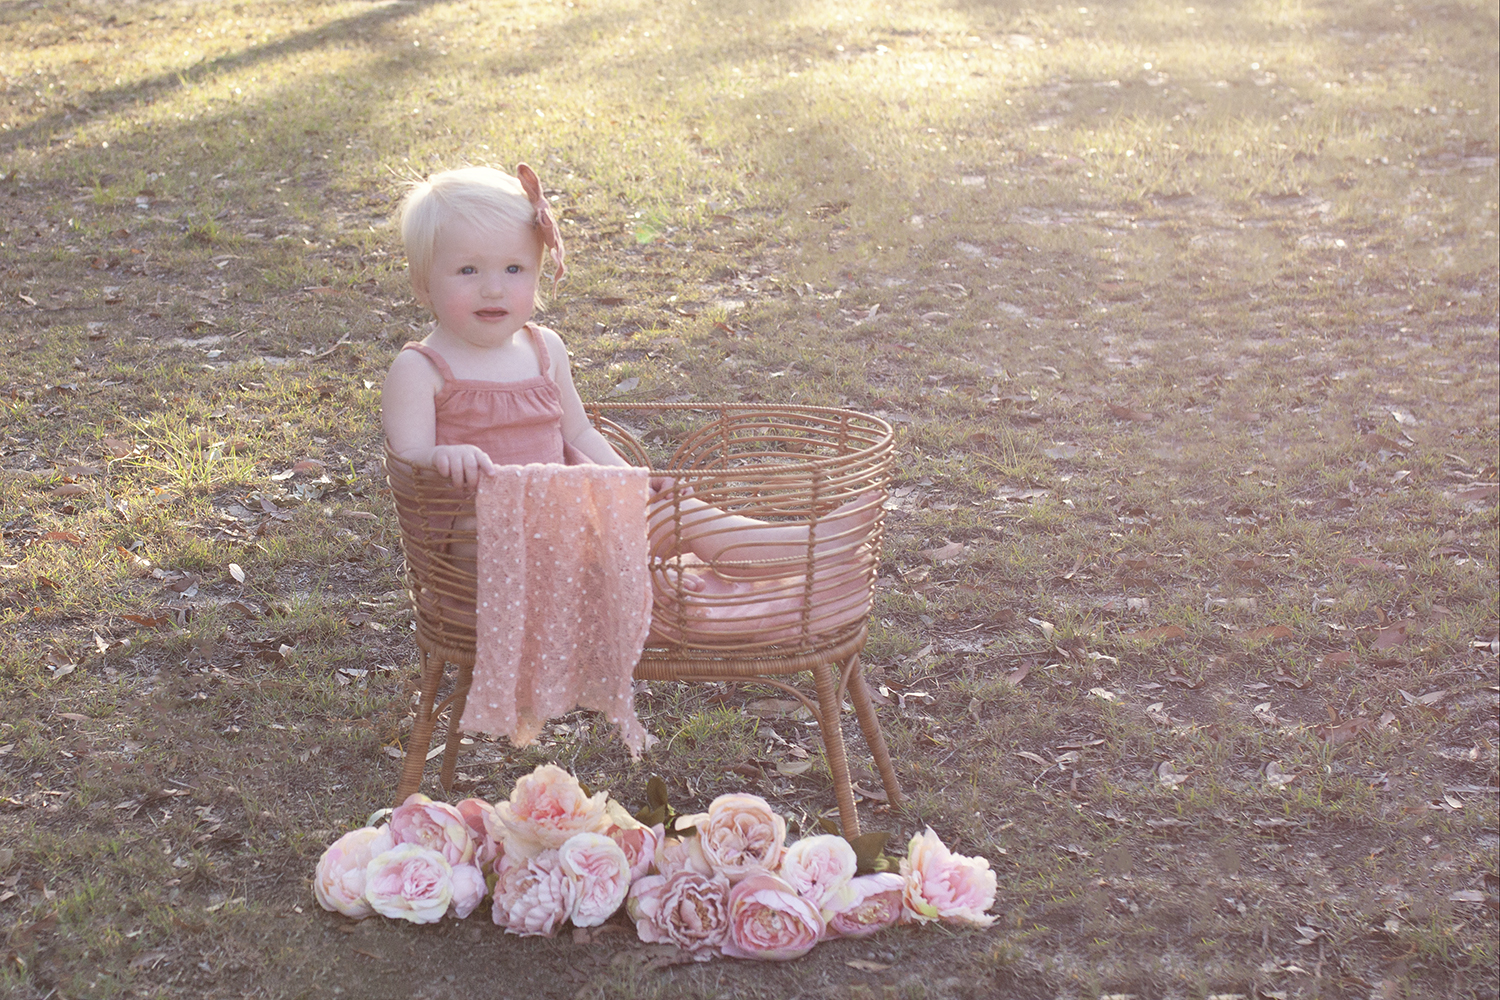 One year old girl in cane basket wearing peach romper and bow with peach blanket and flowers on grass at sunset